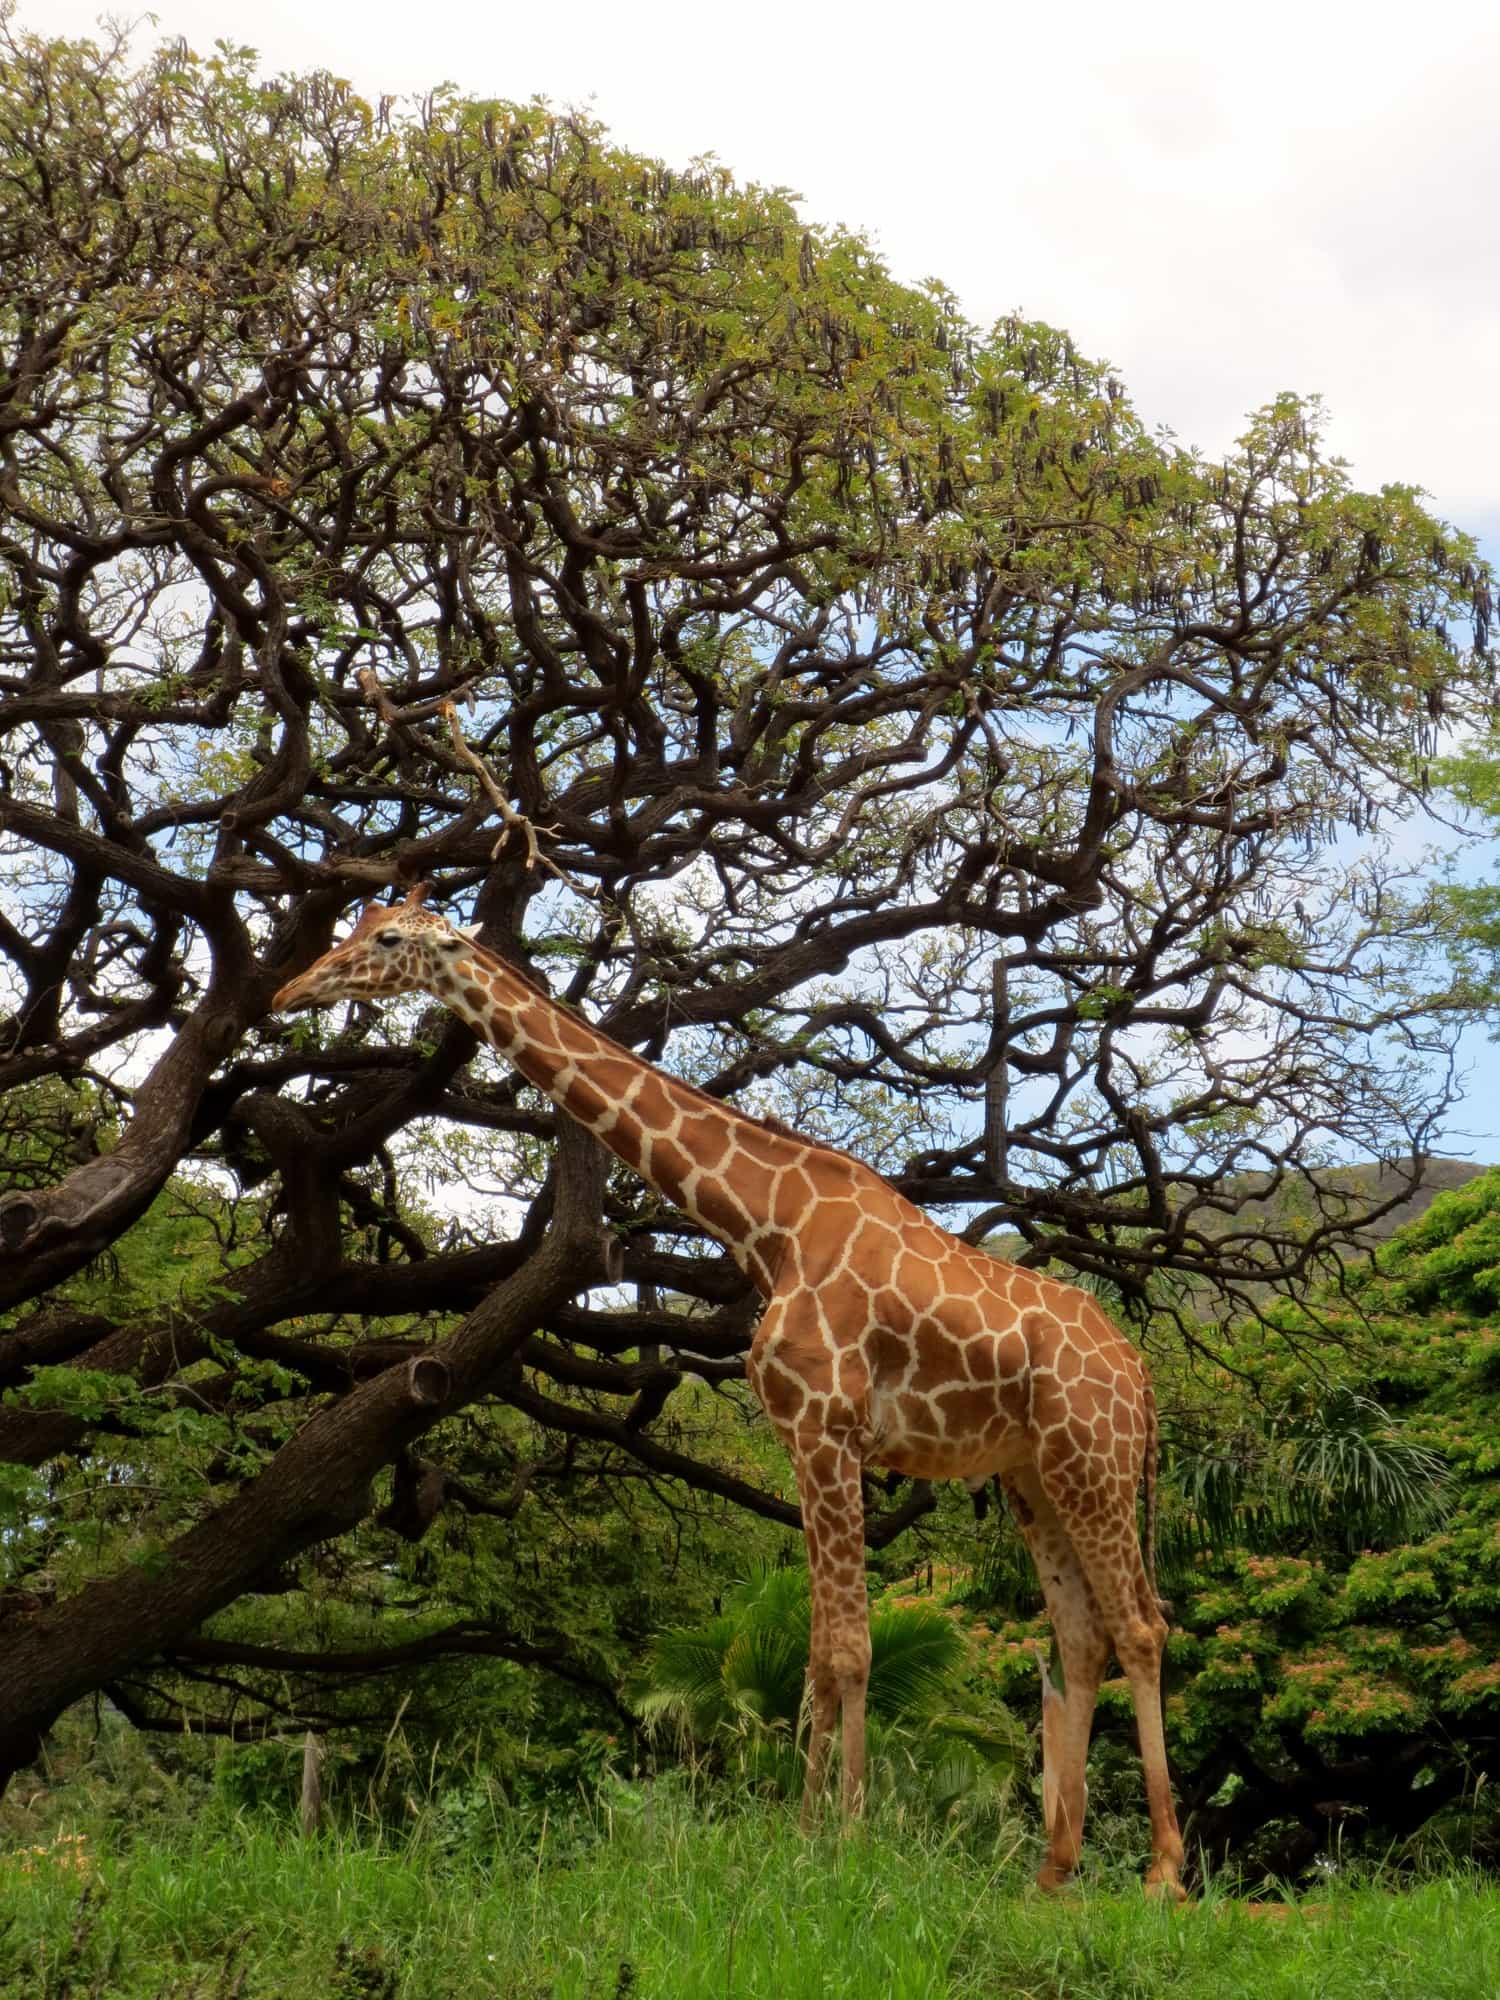 Giraffe at the Honolulu Zoo on Oahu with kids